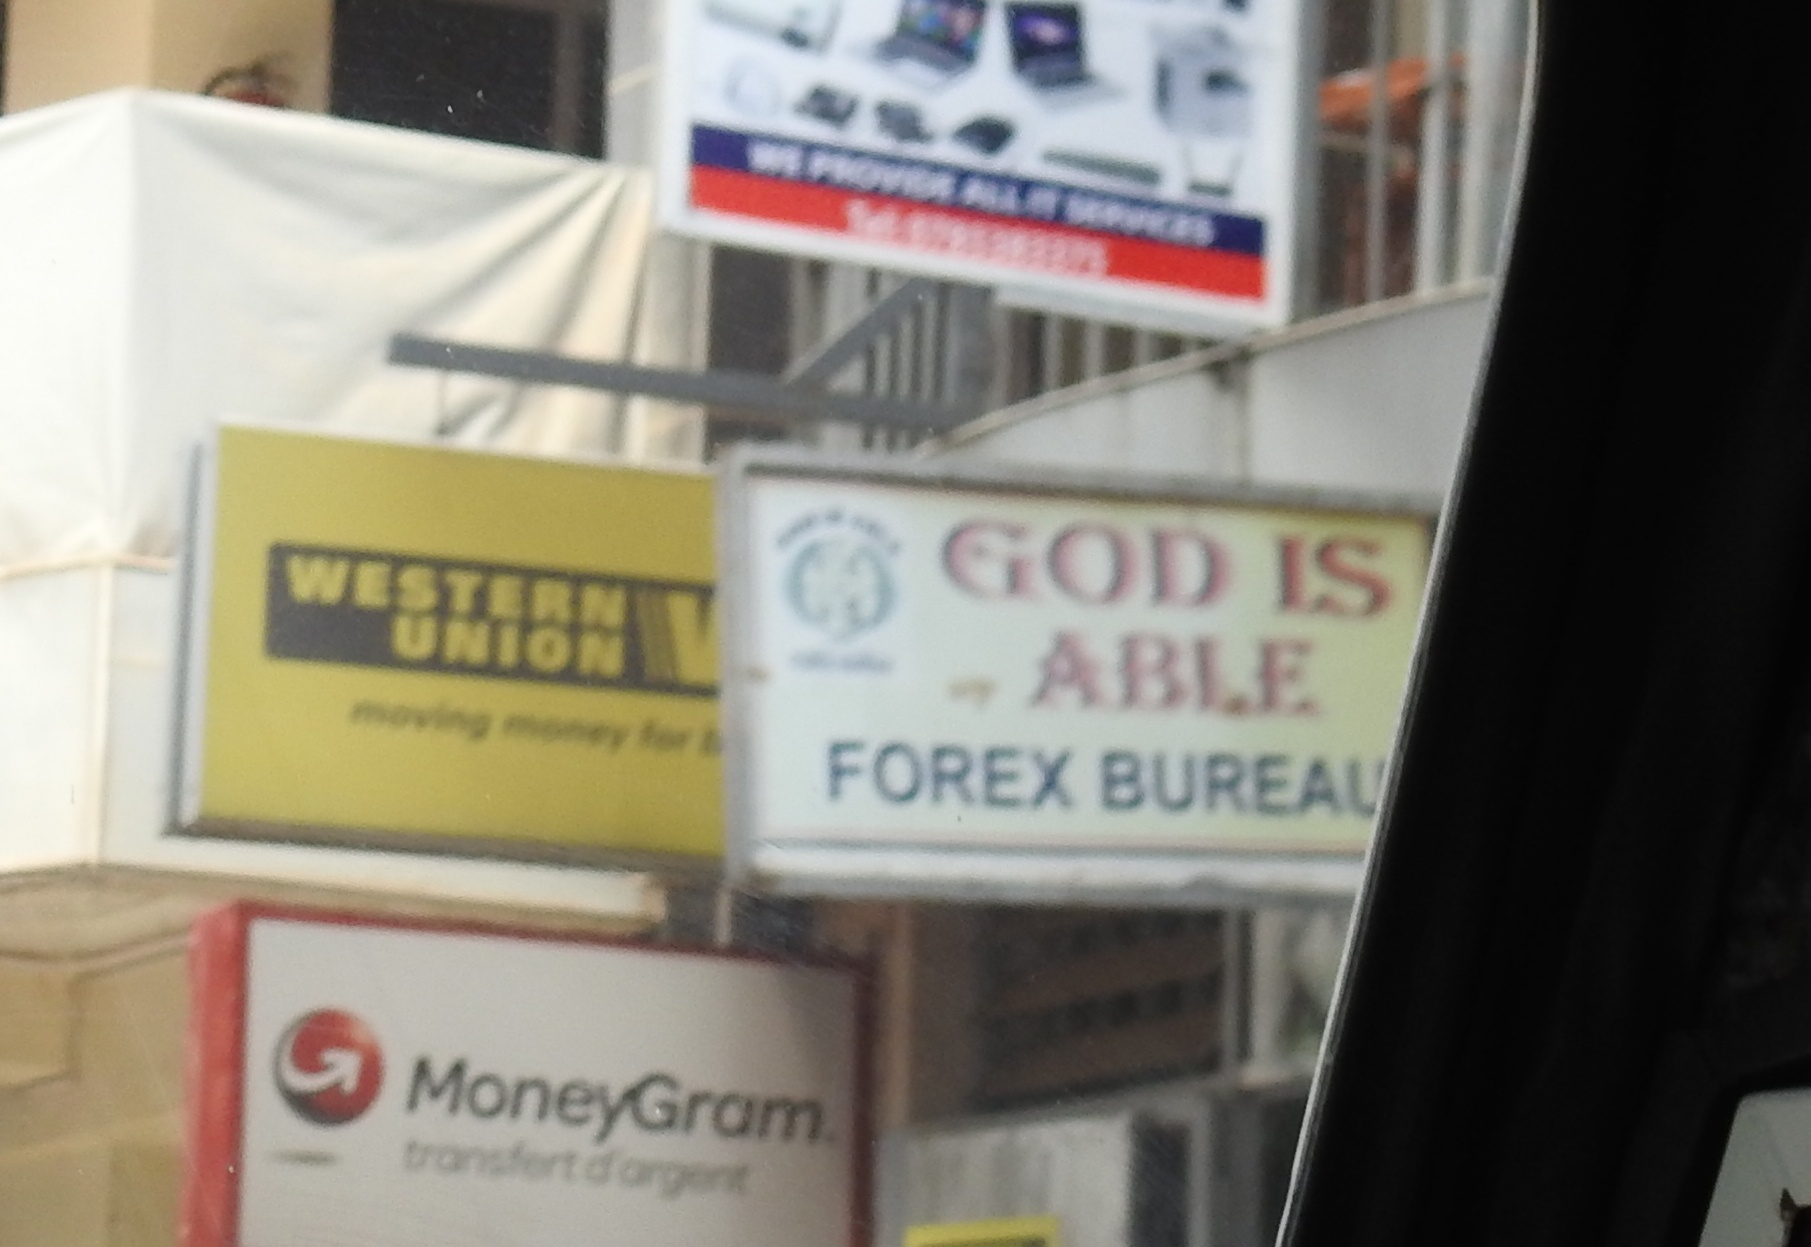 God_is_able_forexJPG-2.jpg